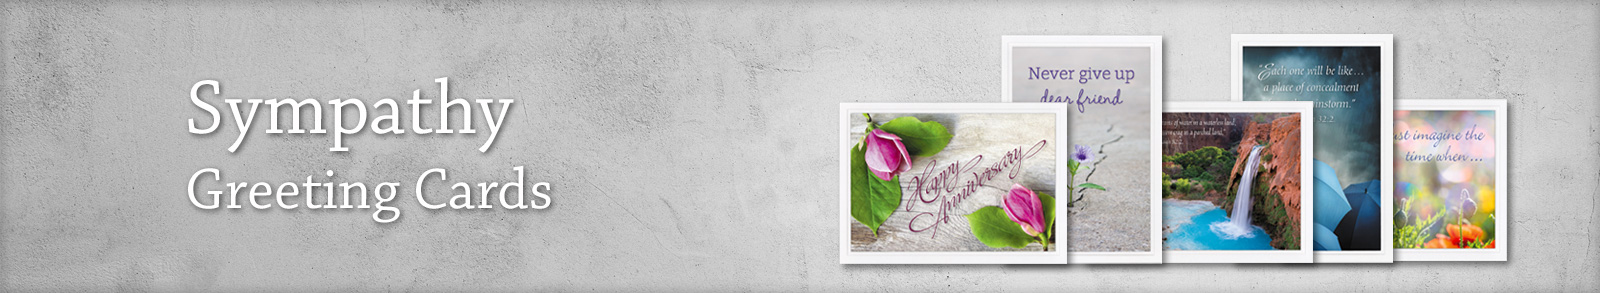 Sympathy greeting cards jehovahs witnesses supplies madzay sympathy m4hsunfo